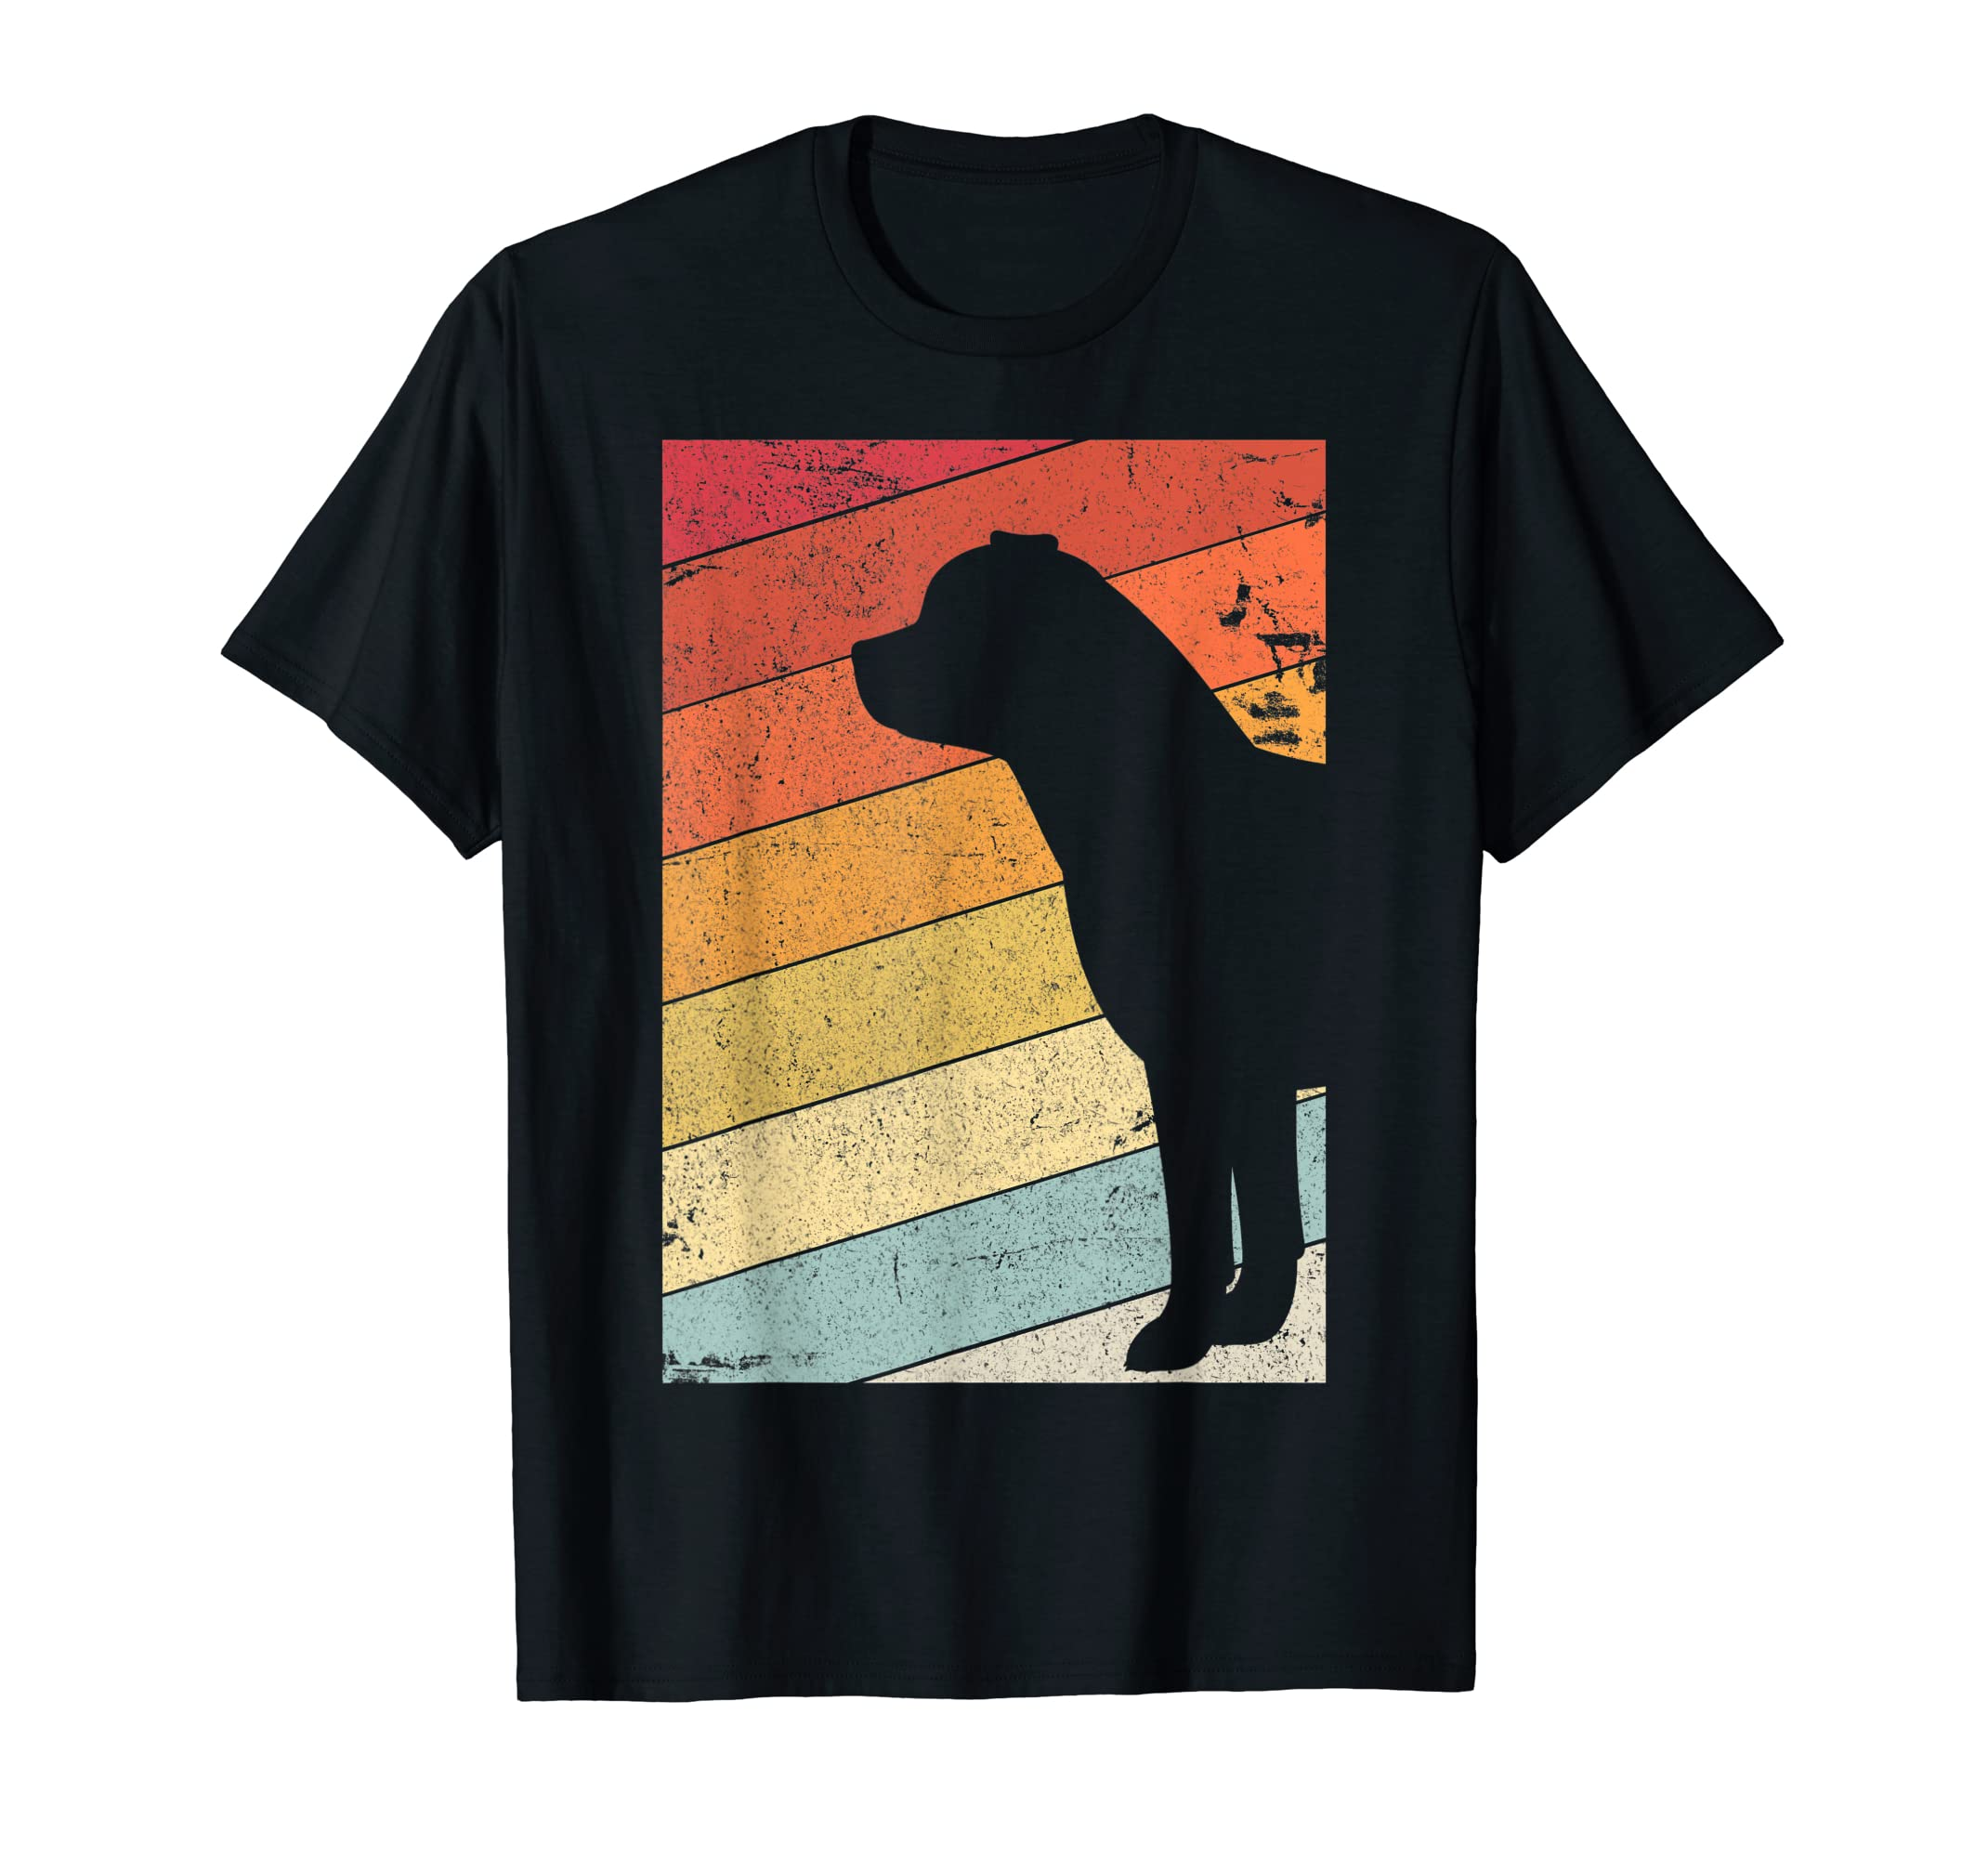 Rottweiler Shirt. Retro Style T-Shirt-Men's T-Shirt-Black